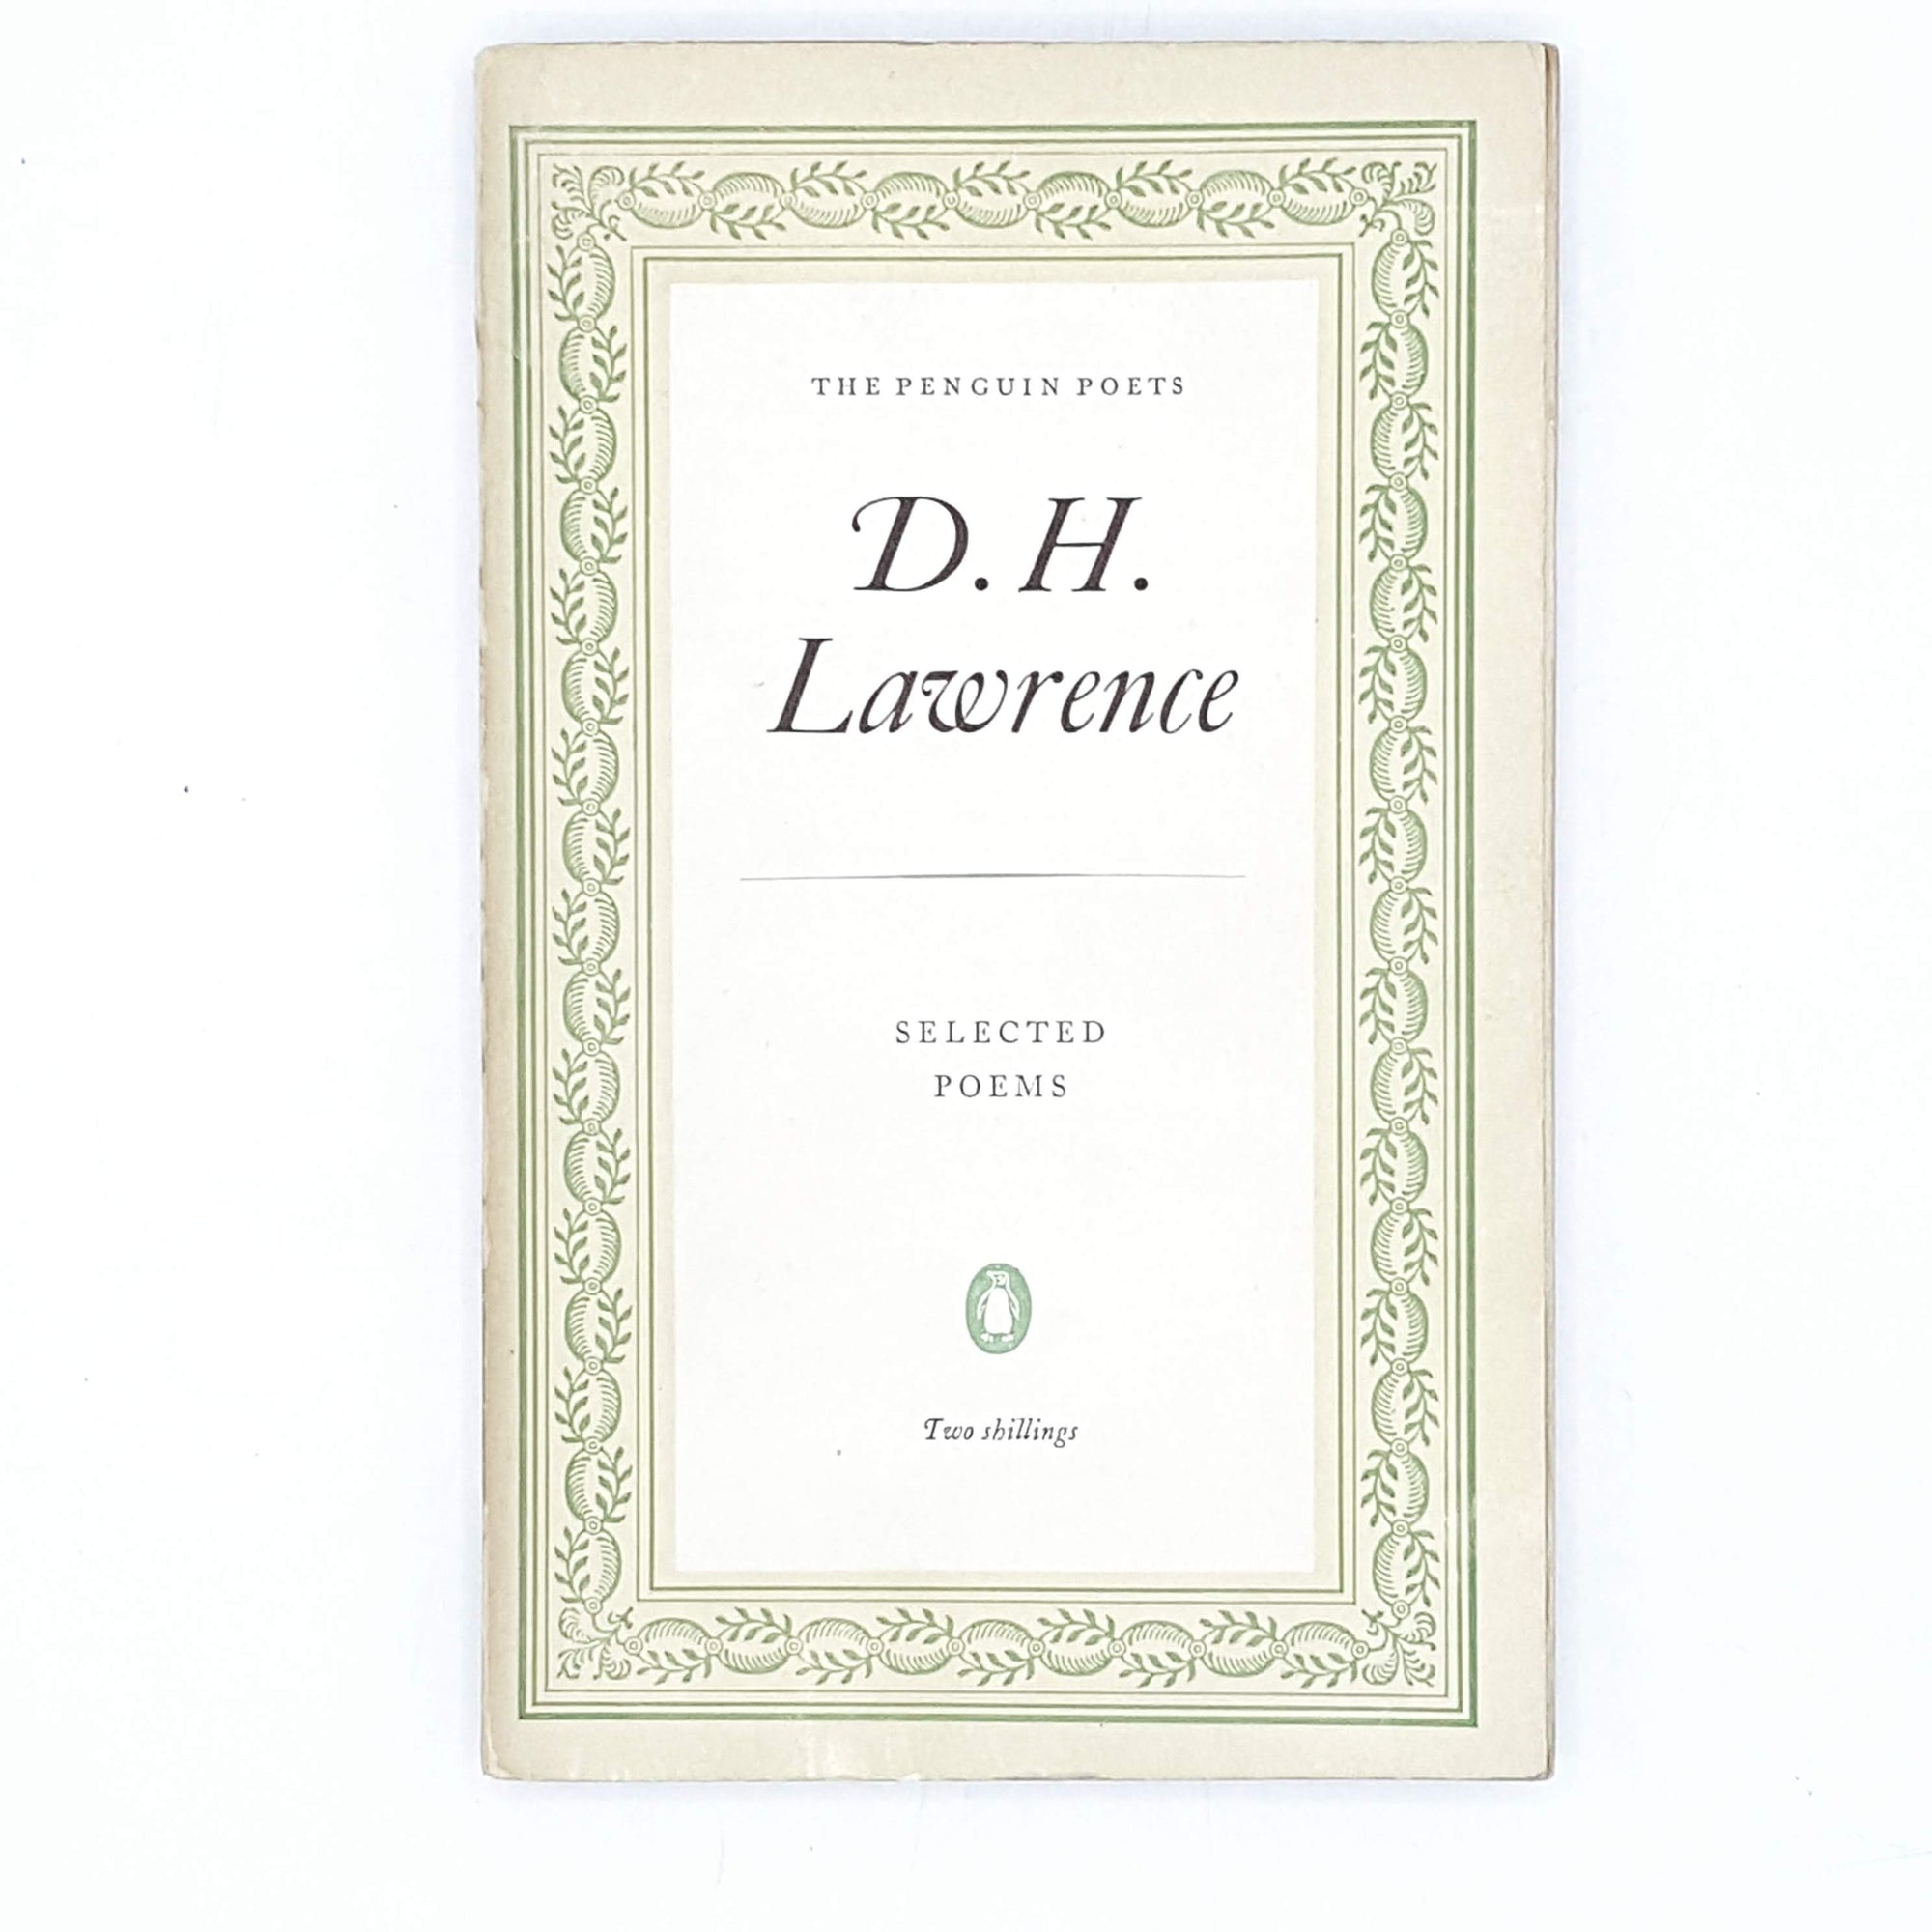 Vintage Penguin Poetry: D. H. Lawrence 1954